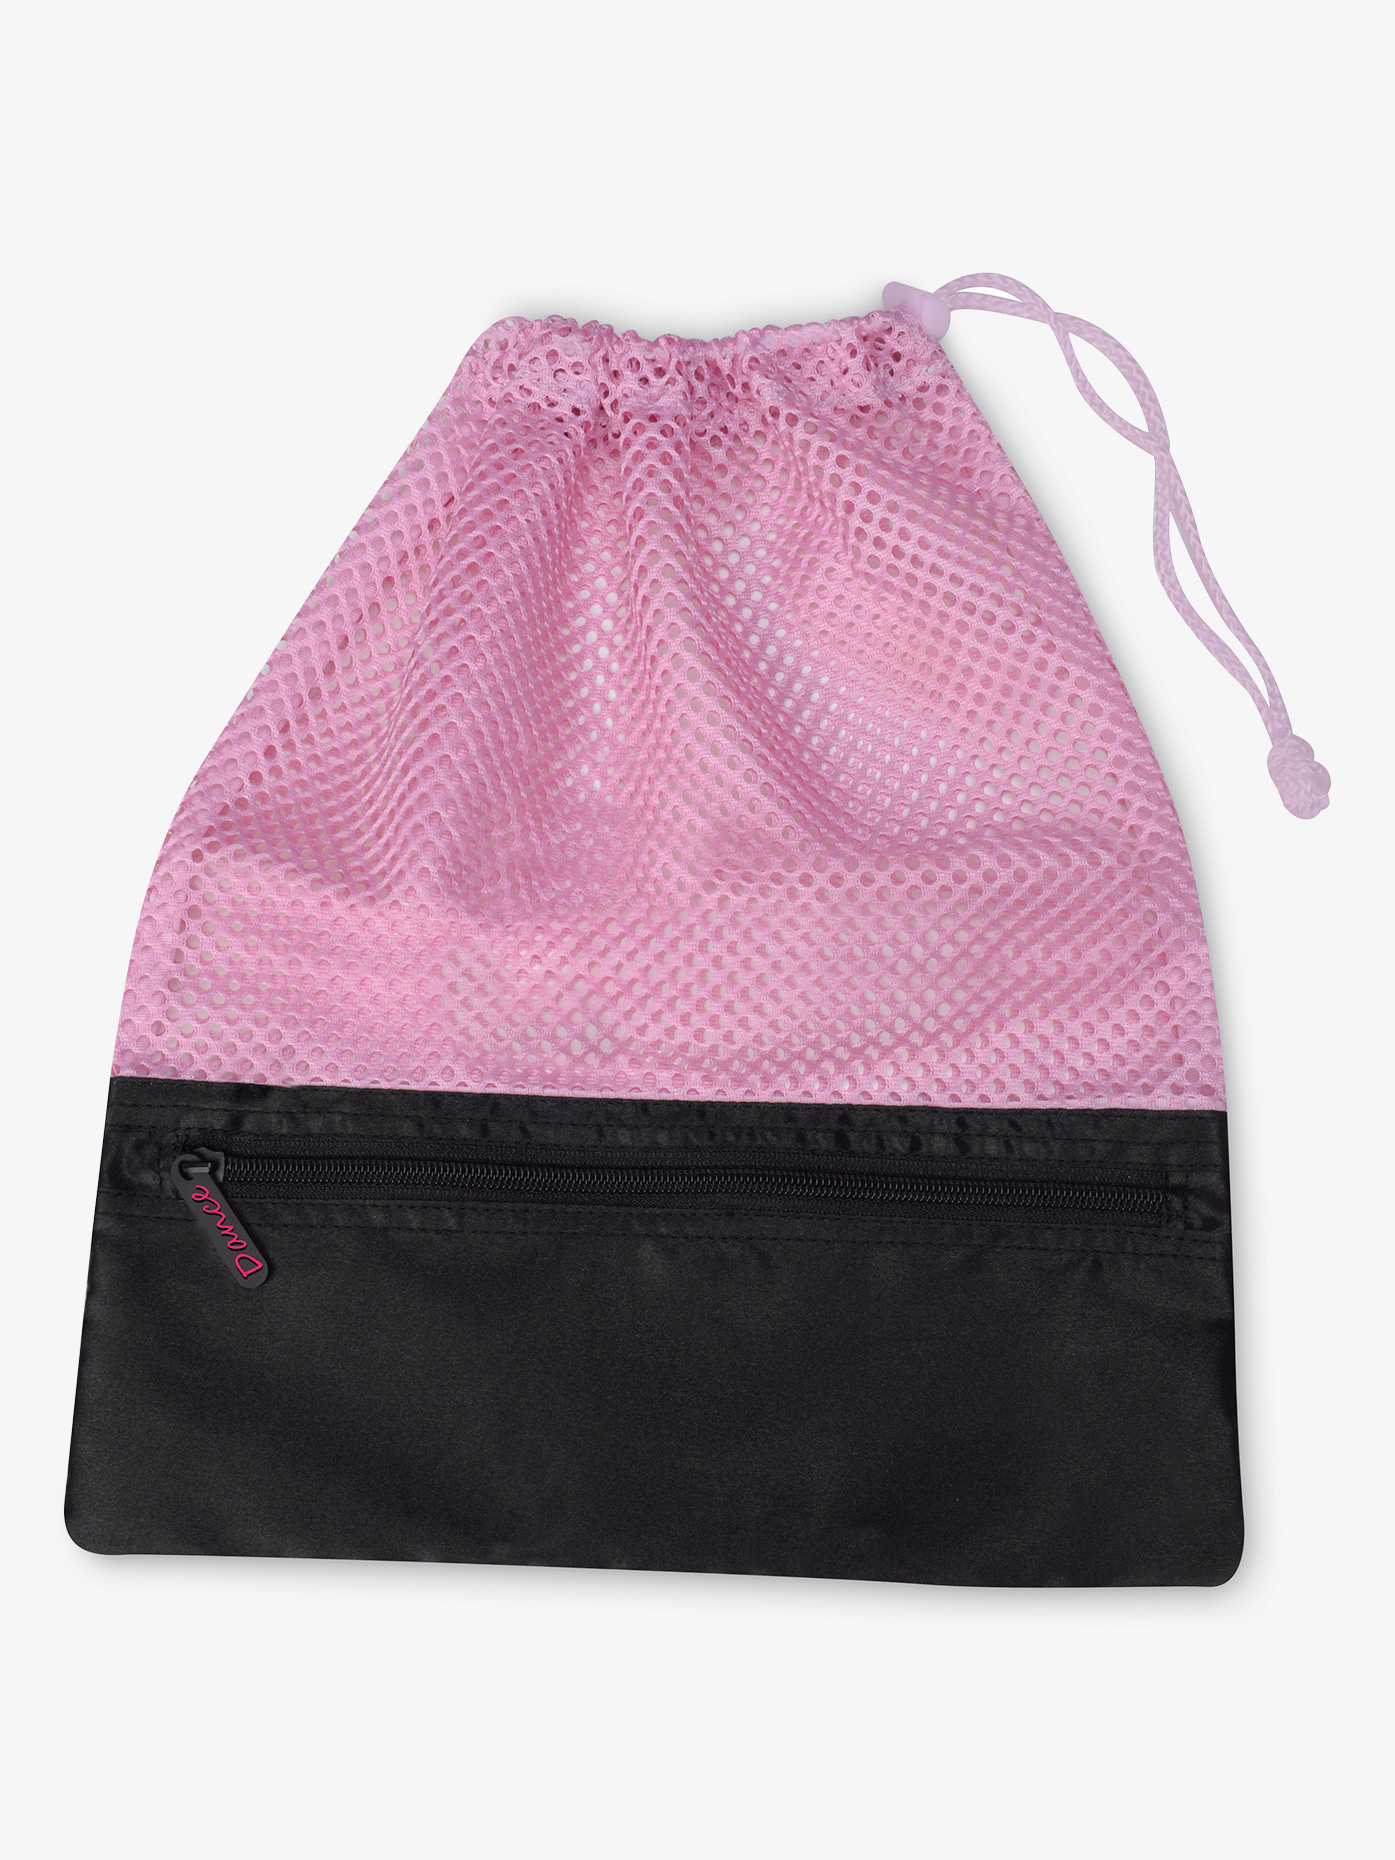 DansBagz Mesh Dance Shoe Bag B745